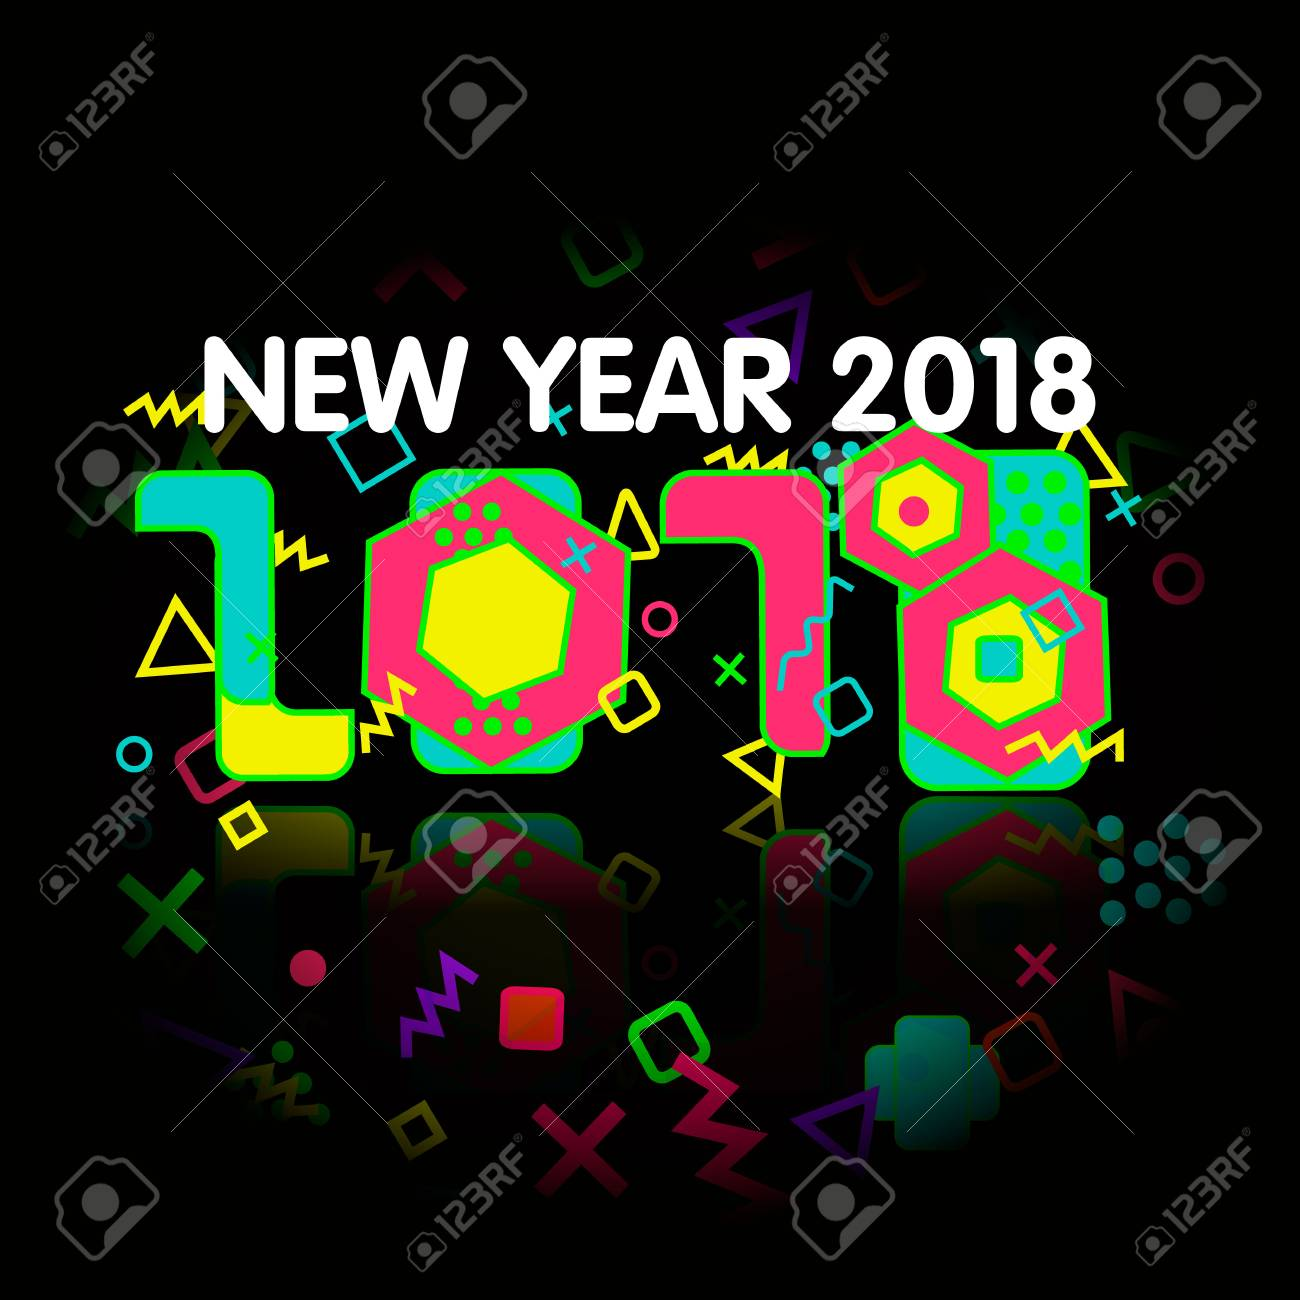 stock photo stylish greeting card happy new year 2018 trendy geometric font in memphis style of 80s 90s digits and abstract elements